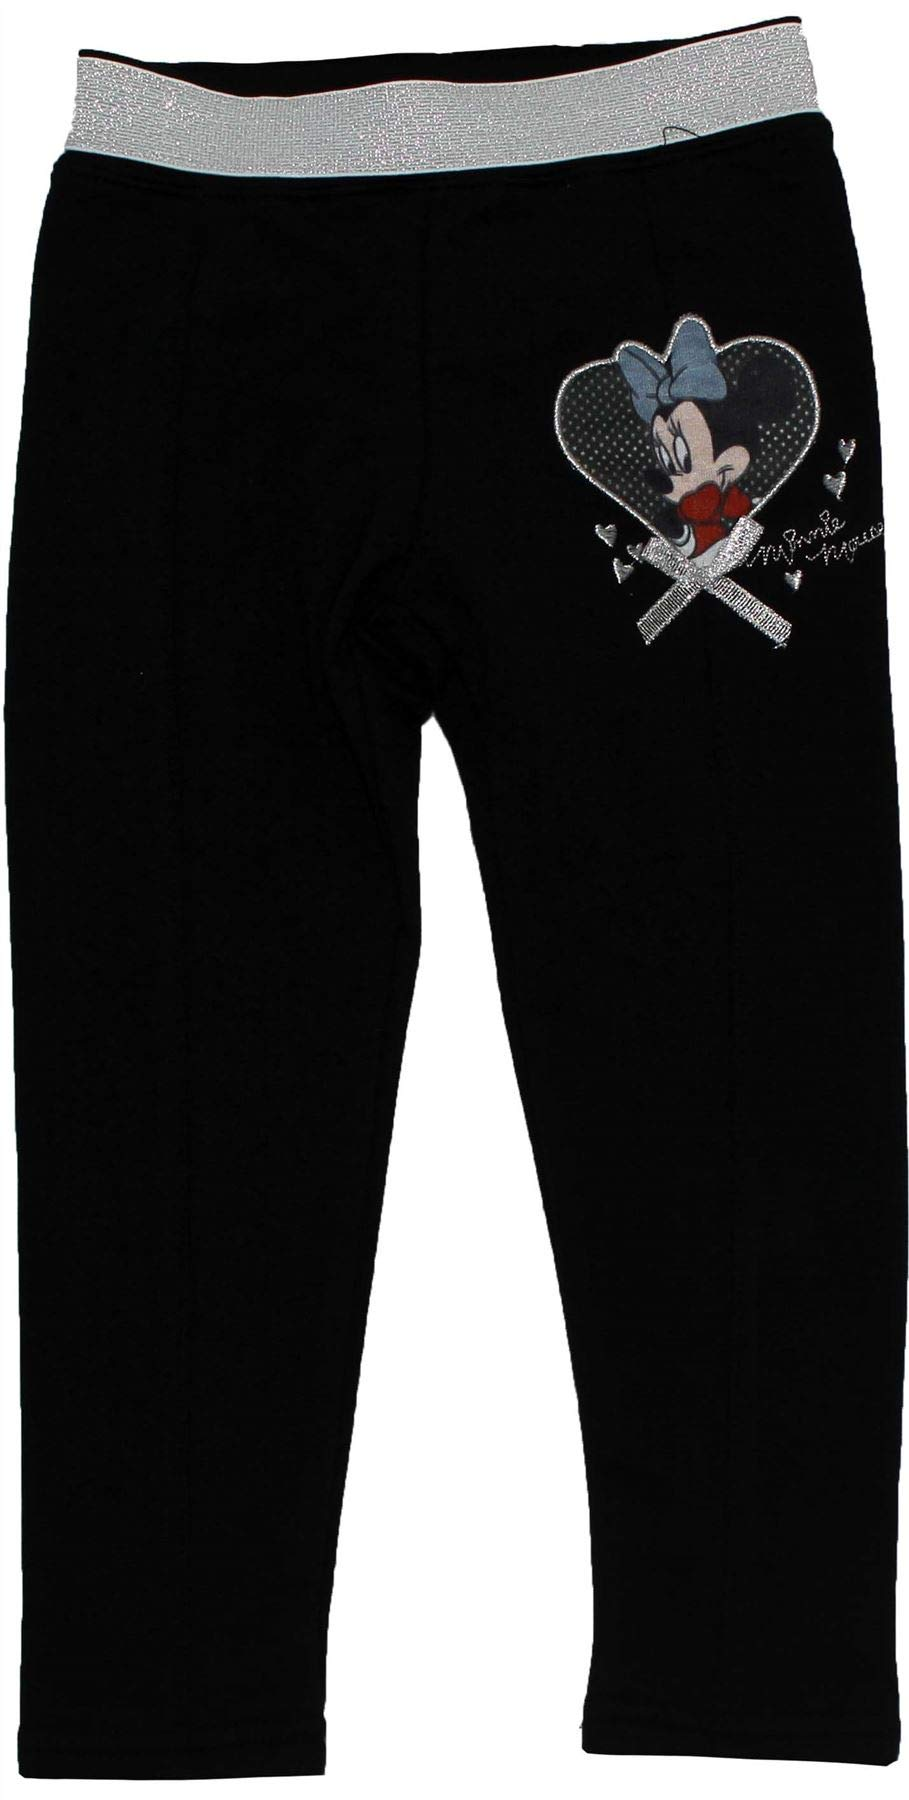 Minnie Mouse Girls Jogging Bottom Trousers Black 5-6 Years by Disney (Image #1)